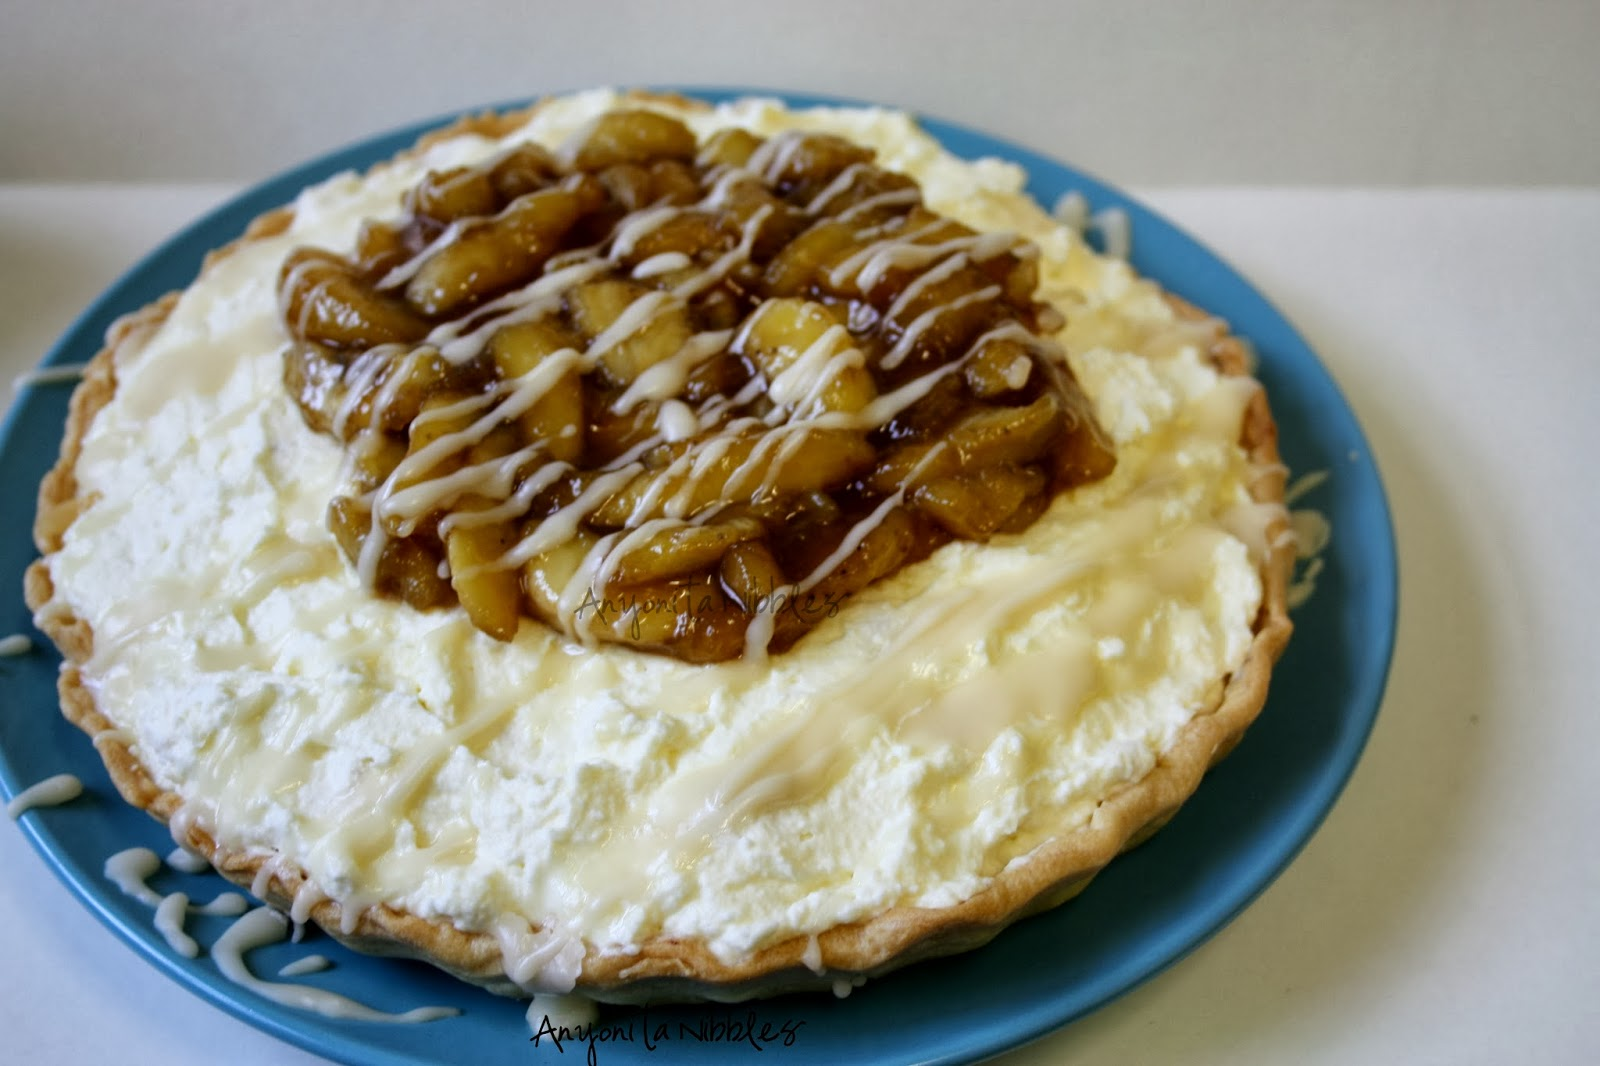 Celebrate Fairtrade Fortnight with a Caramelized Fairtrade Banana Cream Pie from www.anyonita-nibbles.co.uk